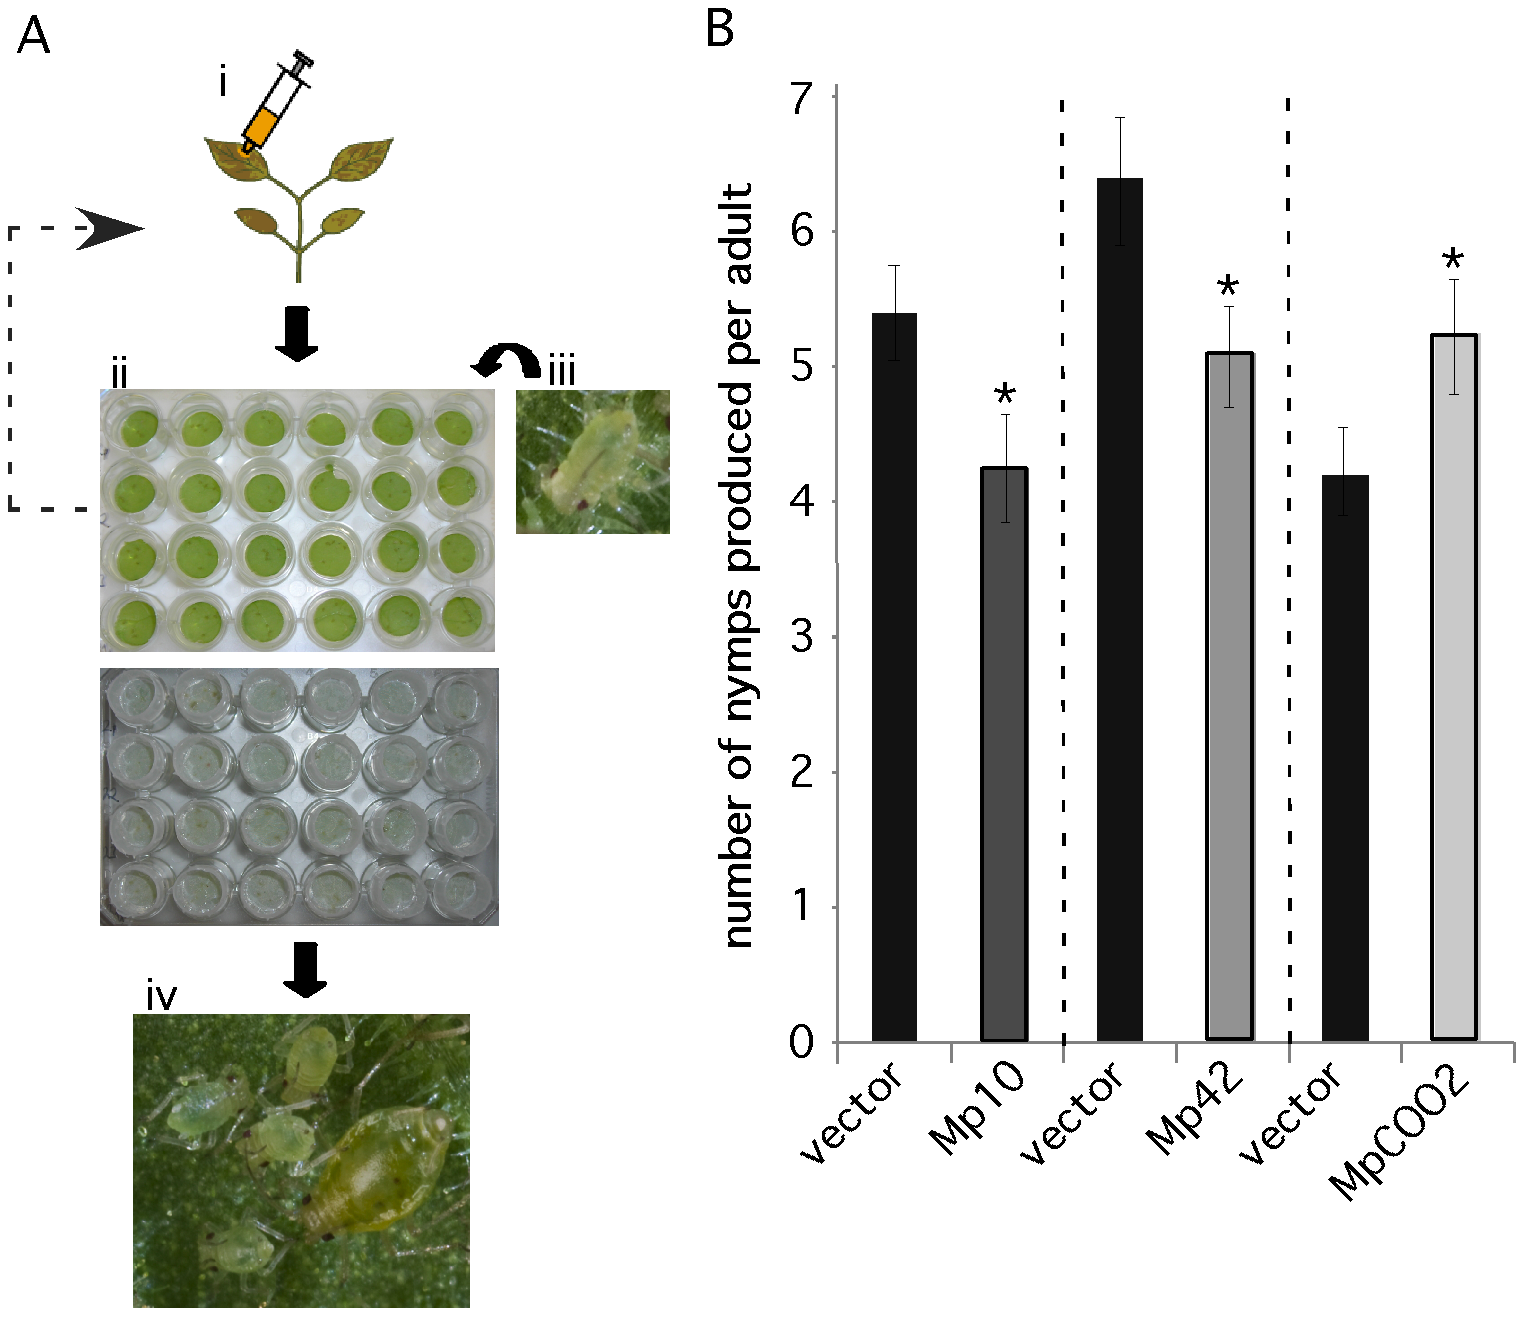 A medium-throughput leaf disc-based assay identifies <i>M. persicae</i> effector candidates that affect aphid performance.